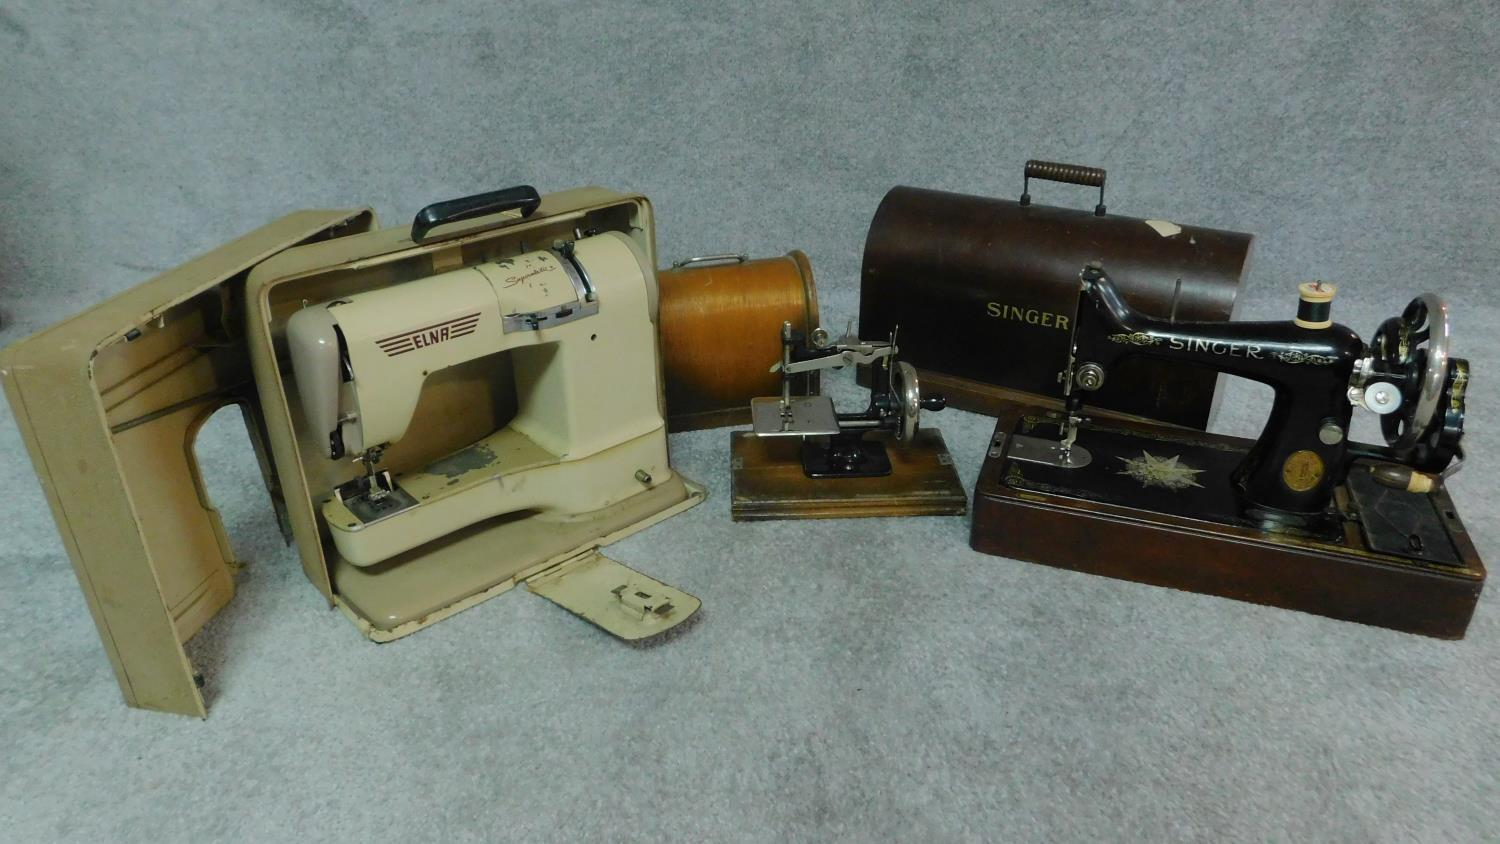 Three miscellaneous sewing machines.